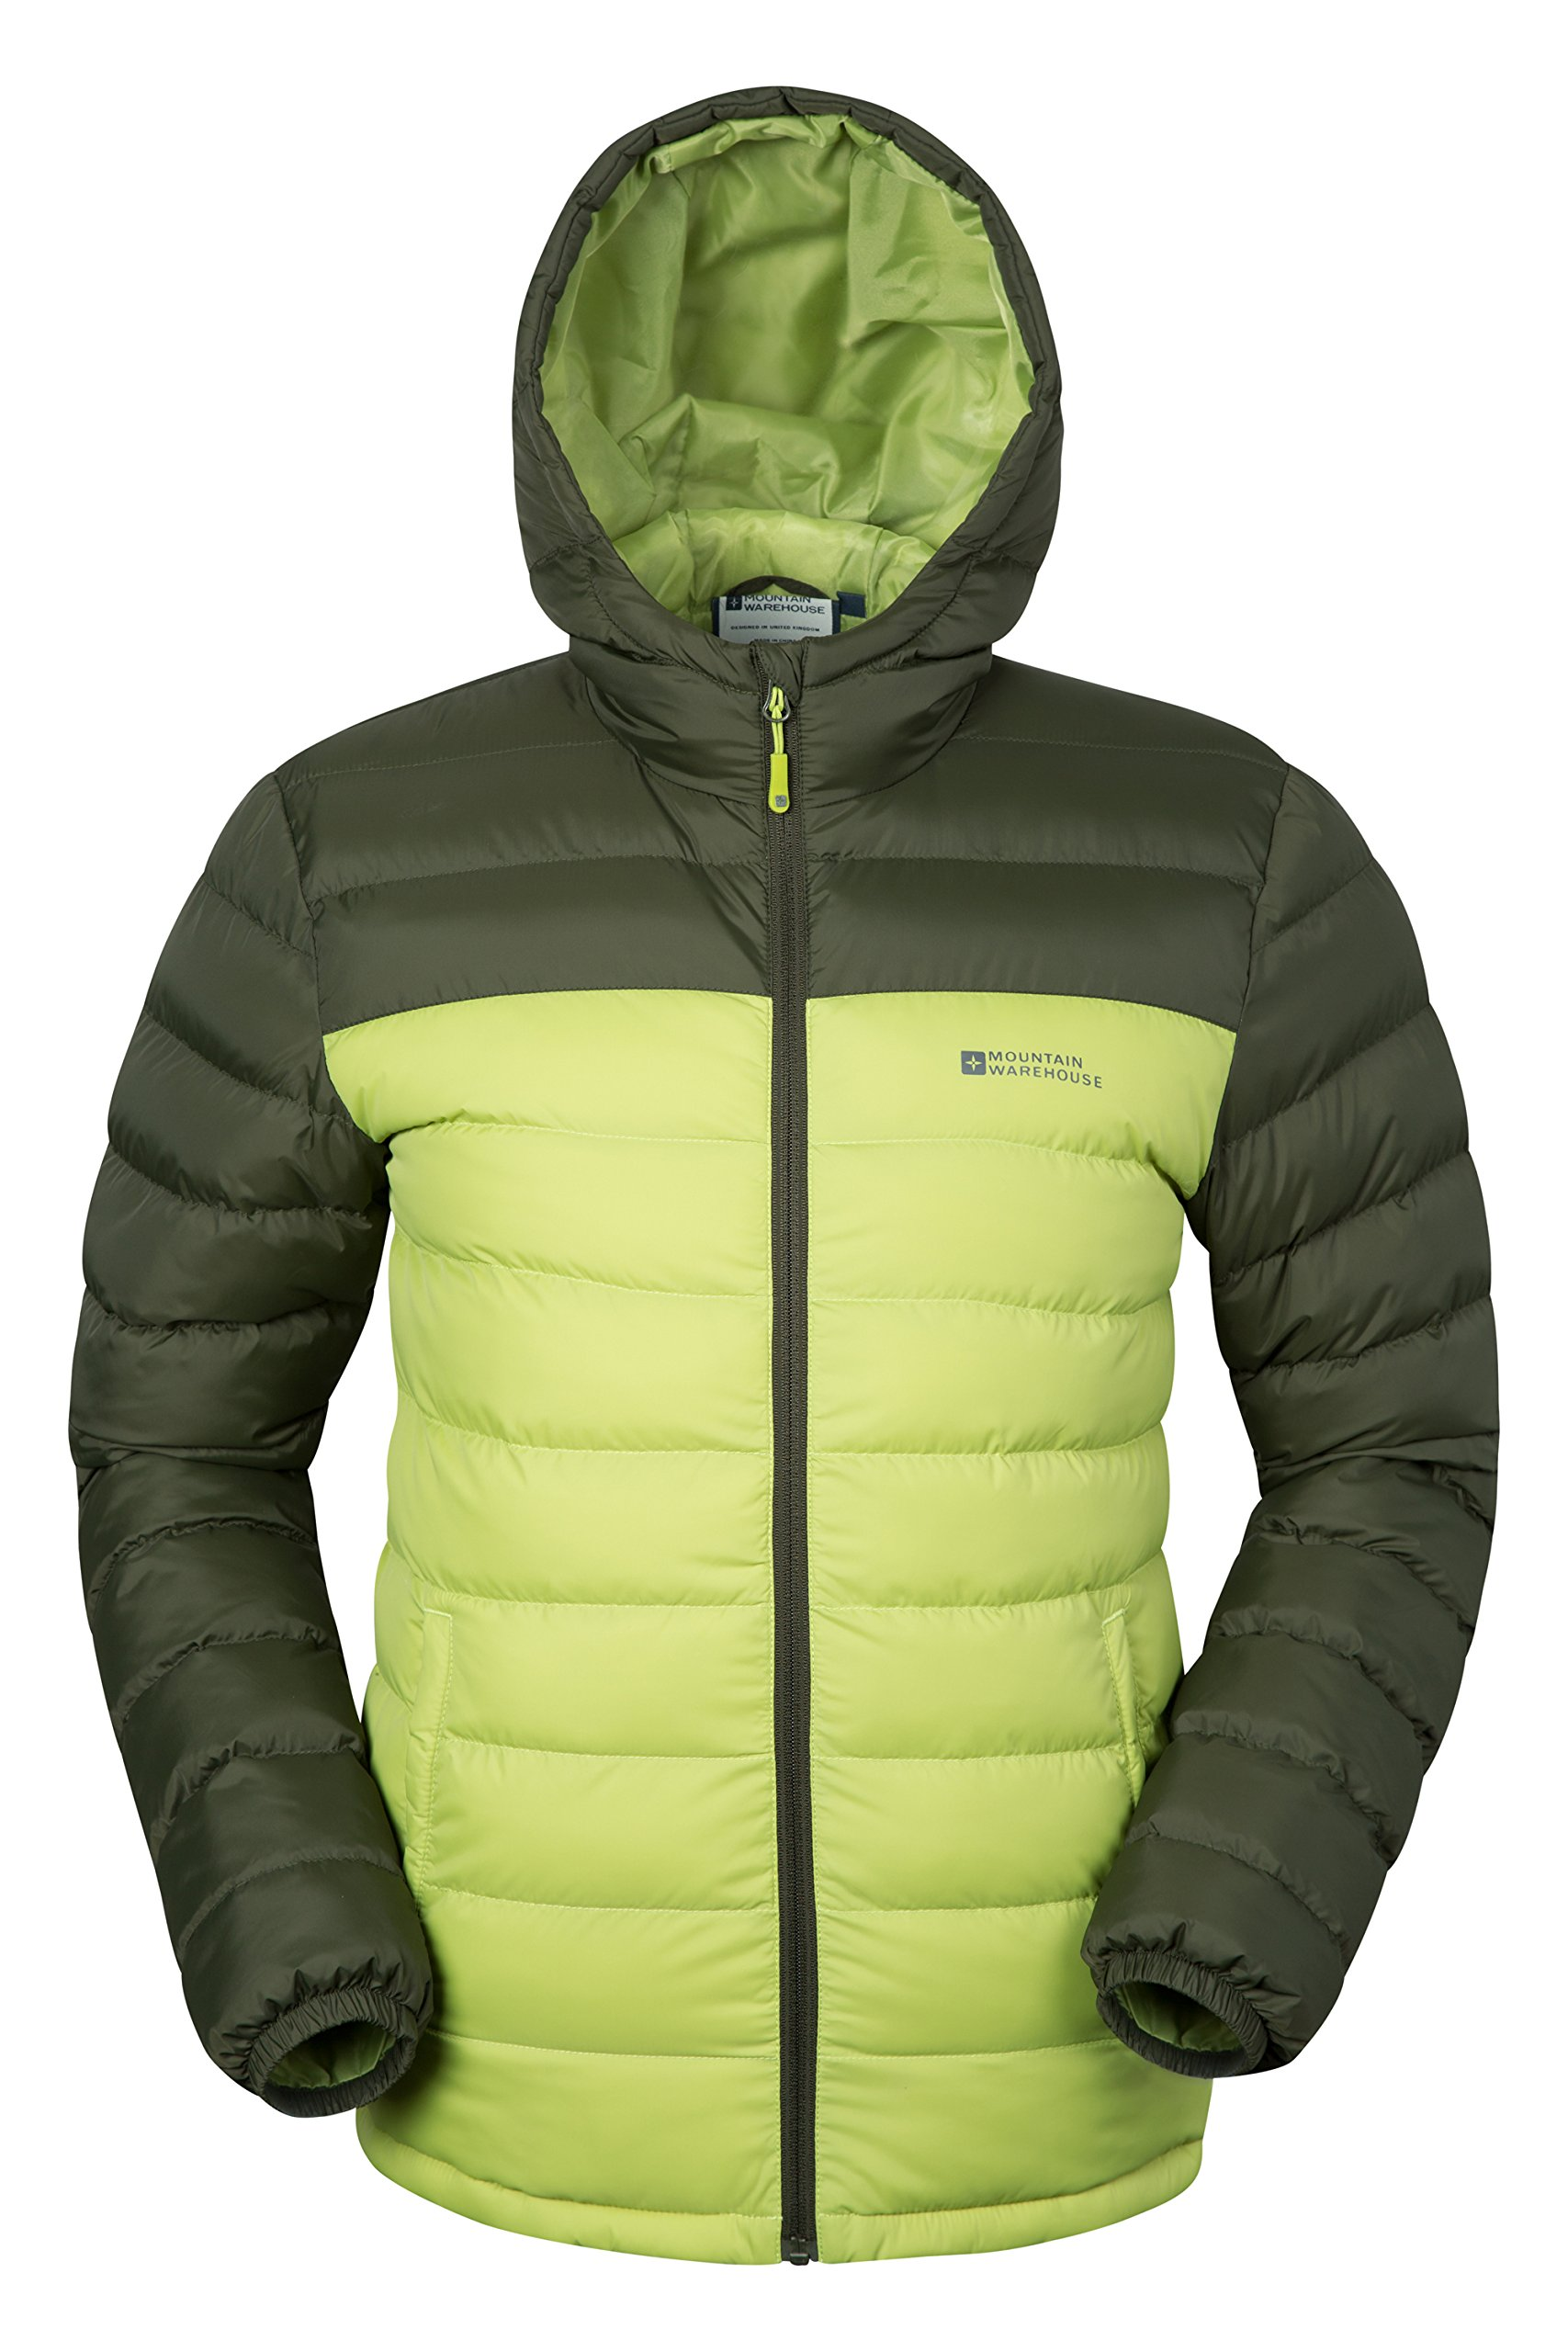 Mountain Warehouse Season Mens Padded Jacket - Water Resistant Jacket, Lightweight, Warm, Lab Tested to -30C, Microfibre Filler - for Winter Travelling, Walking 1